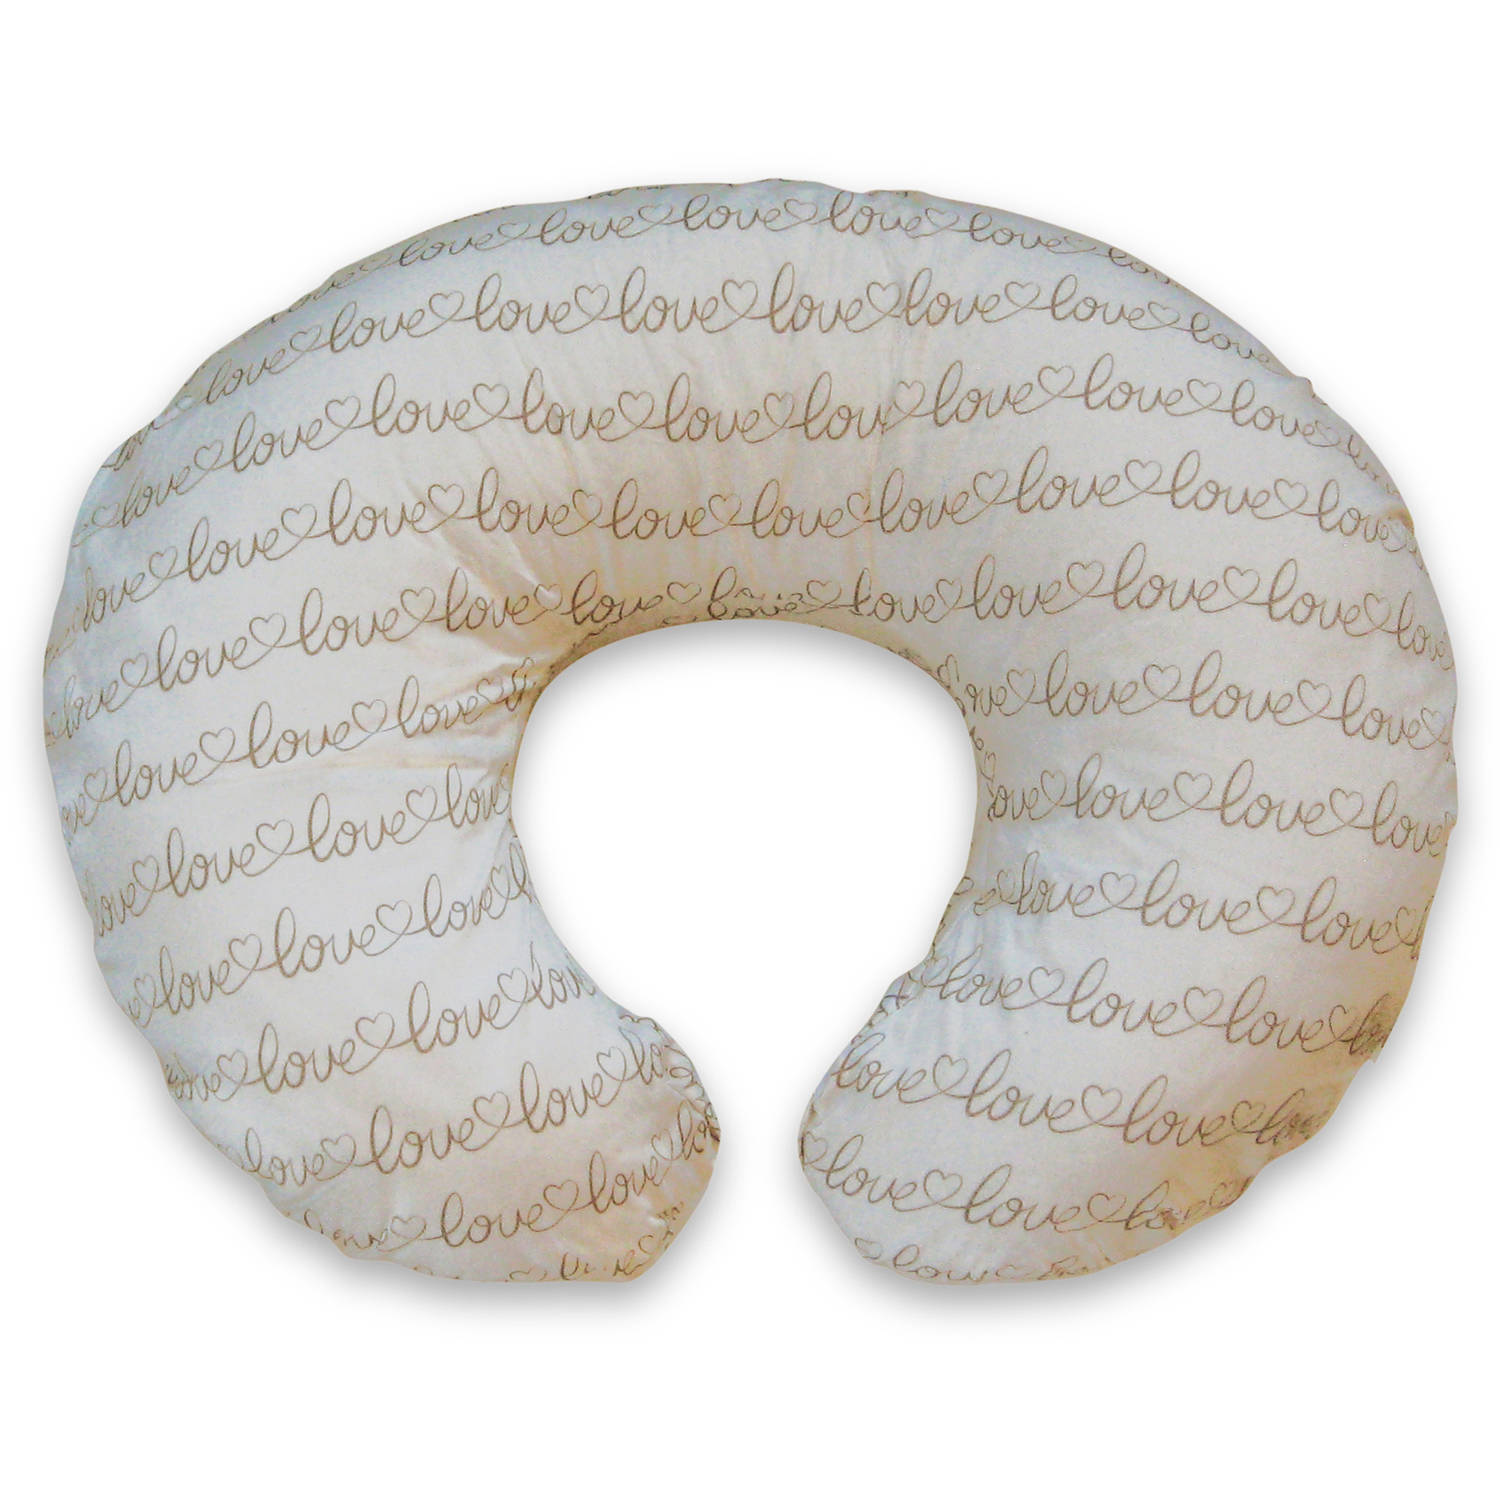 Original Boppy Nursing Pillow and Positioner Love Letters